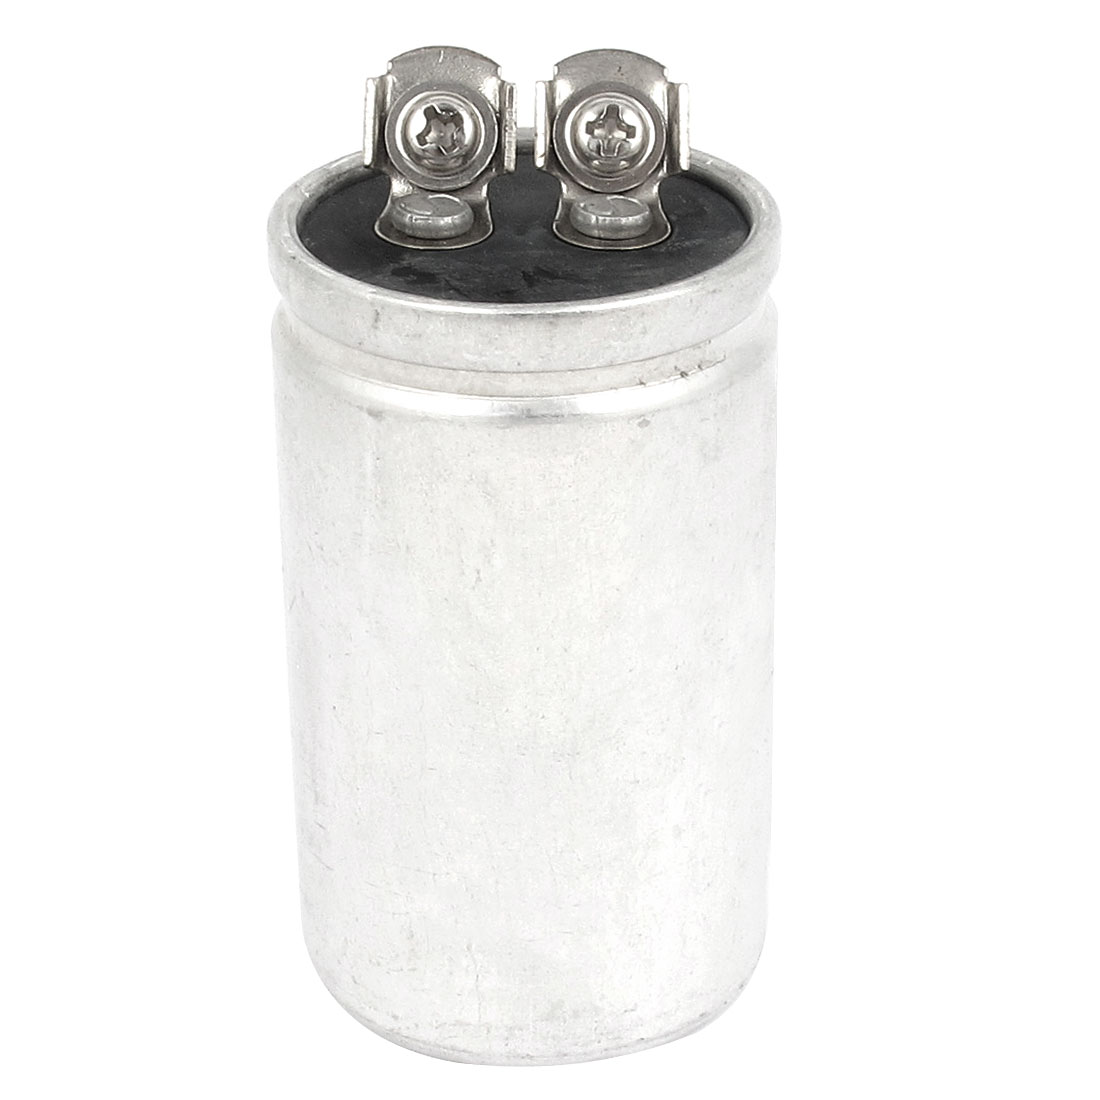 "ABS Series 100UF AC 125V 50/60Hz Motor Start Capacitor 2 Terminals 1.4"" Dia"